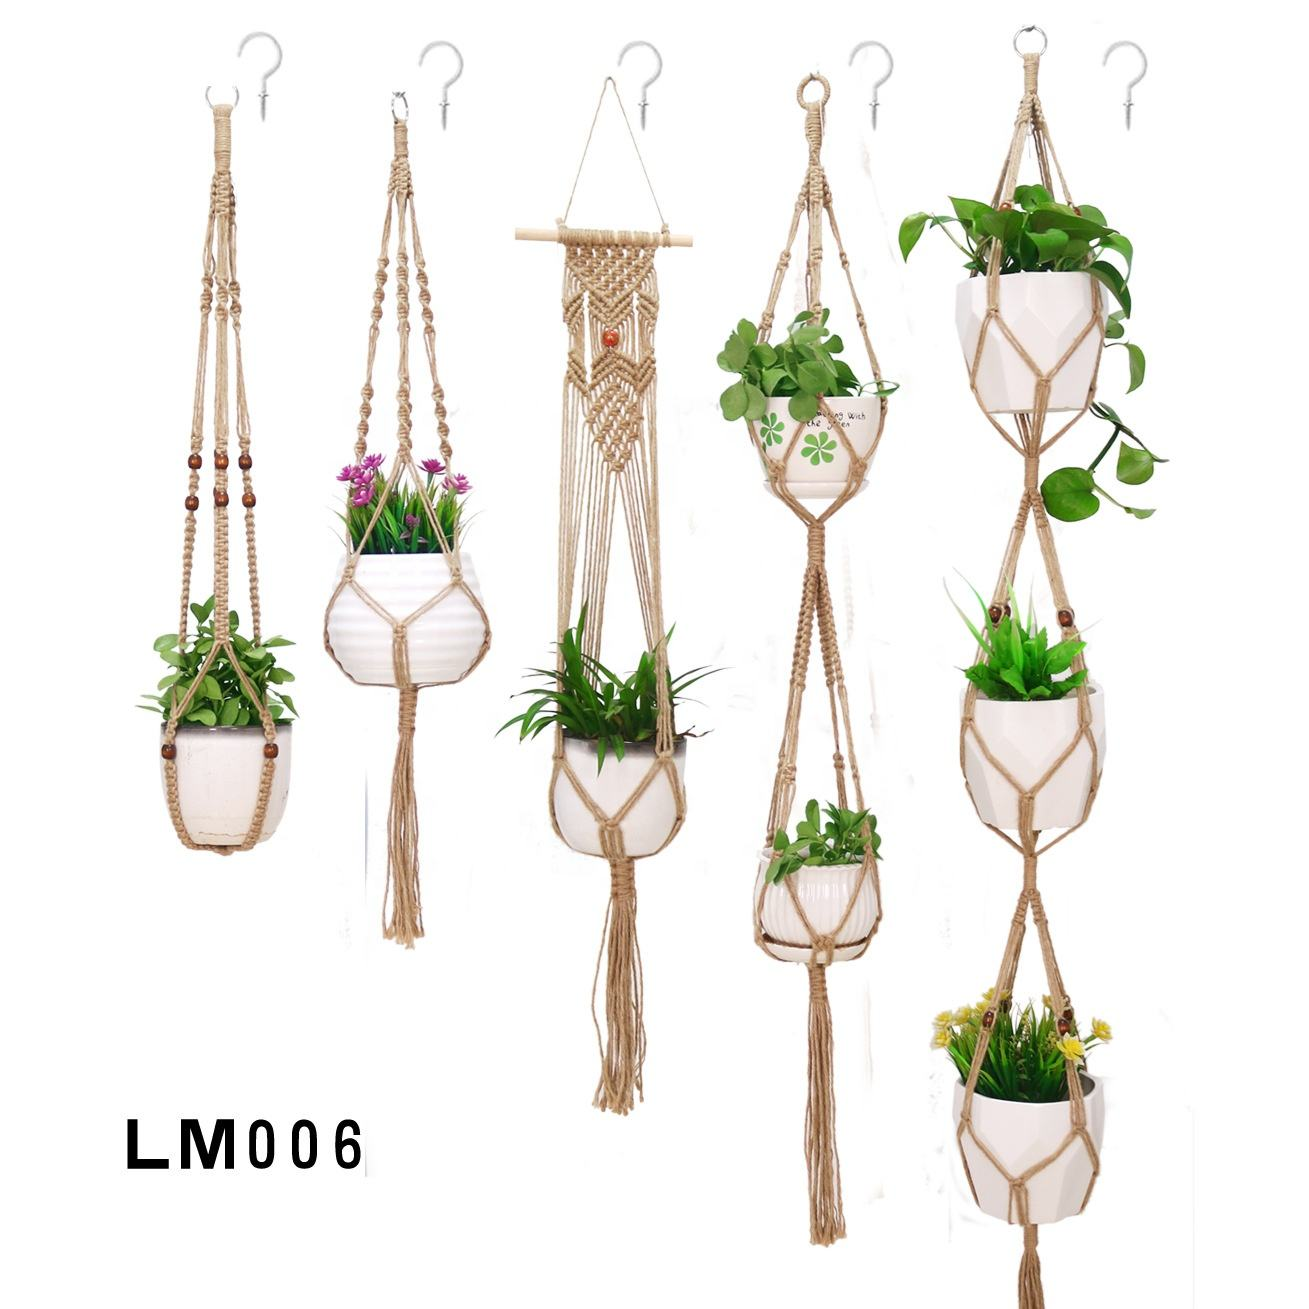 Macrame Plant Hangers Set of 5 Indoor Wall Hanging Planter Basket Flower Pot Holder Boho Home Decor